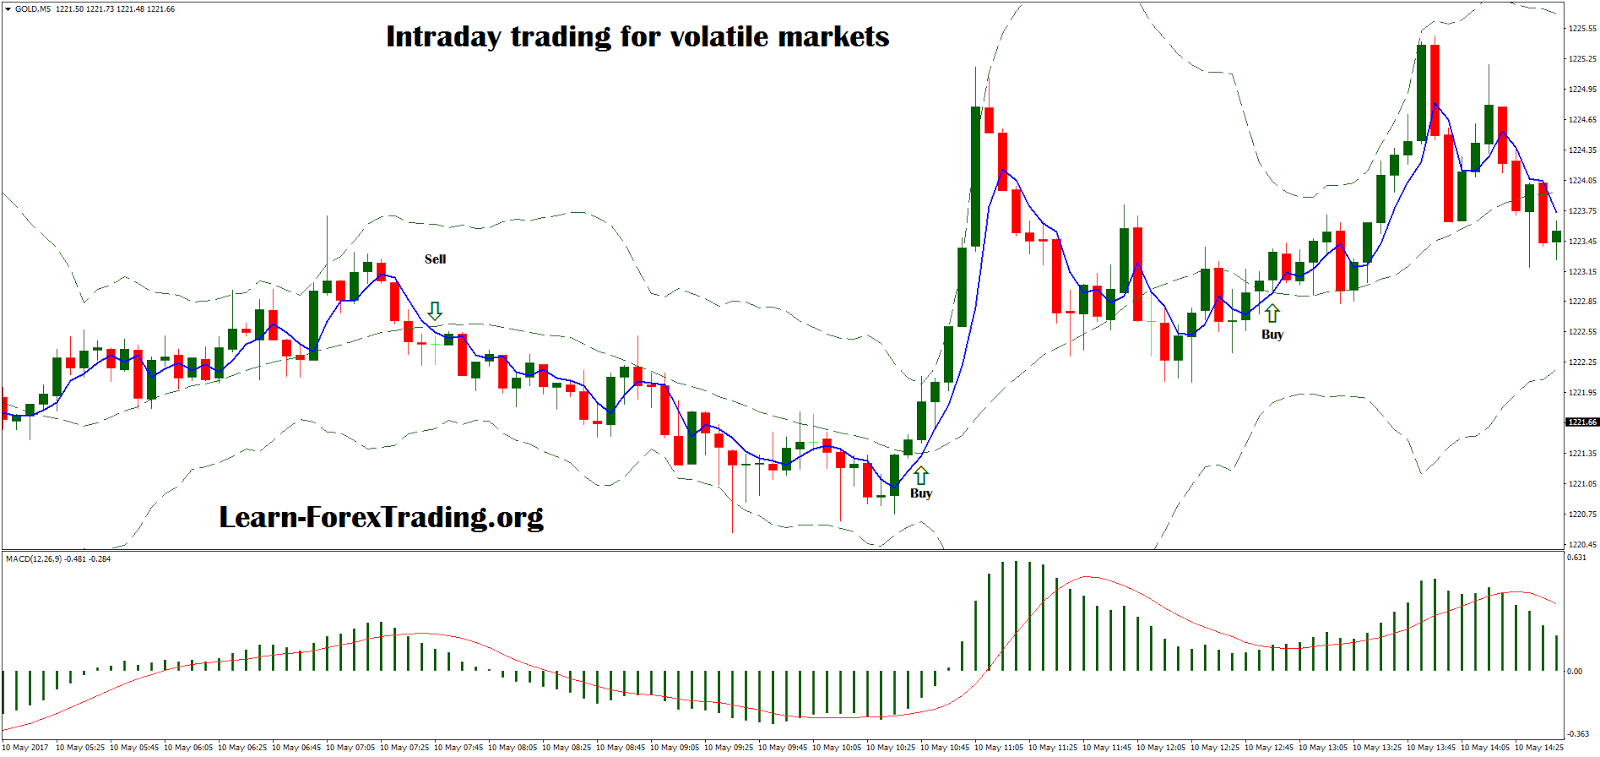 Intraday forex trading strategies